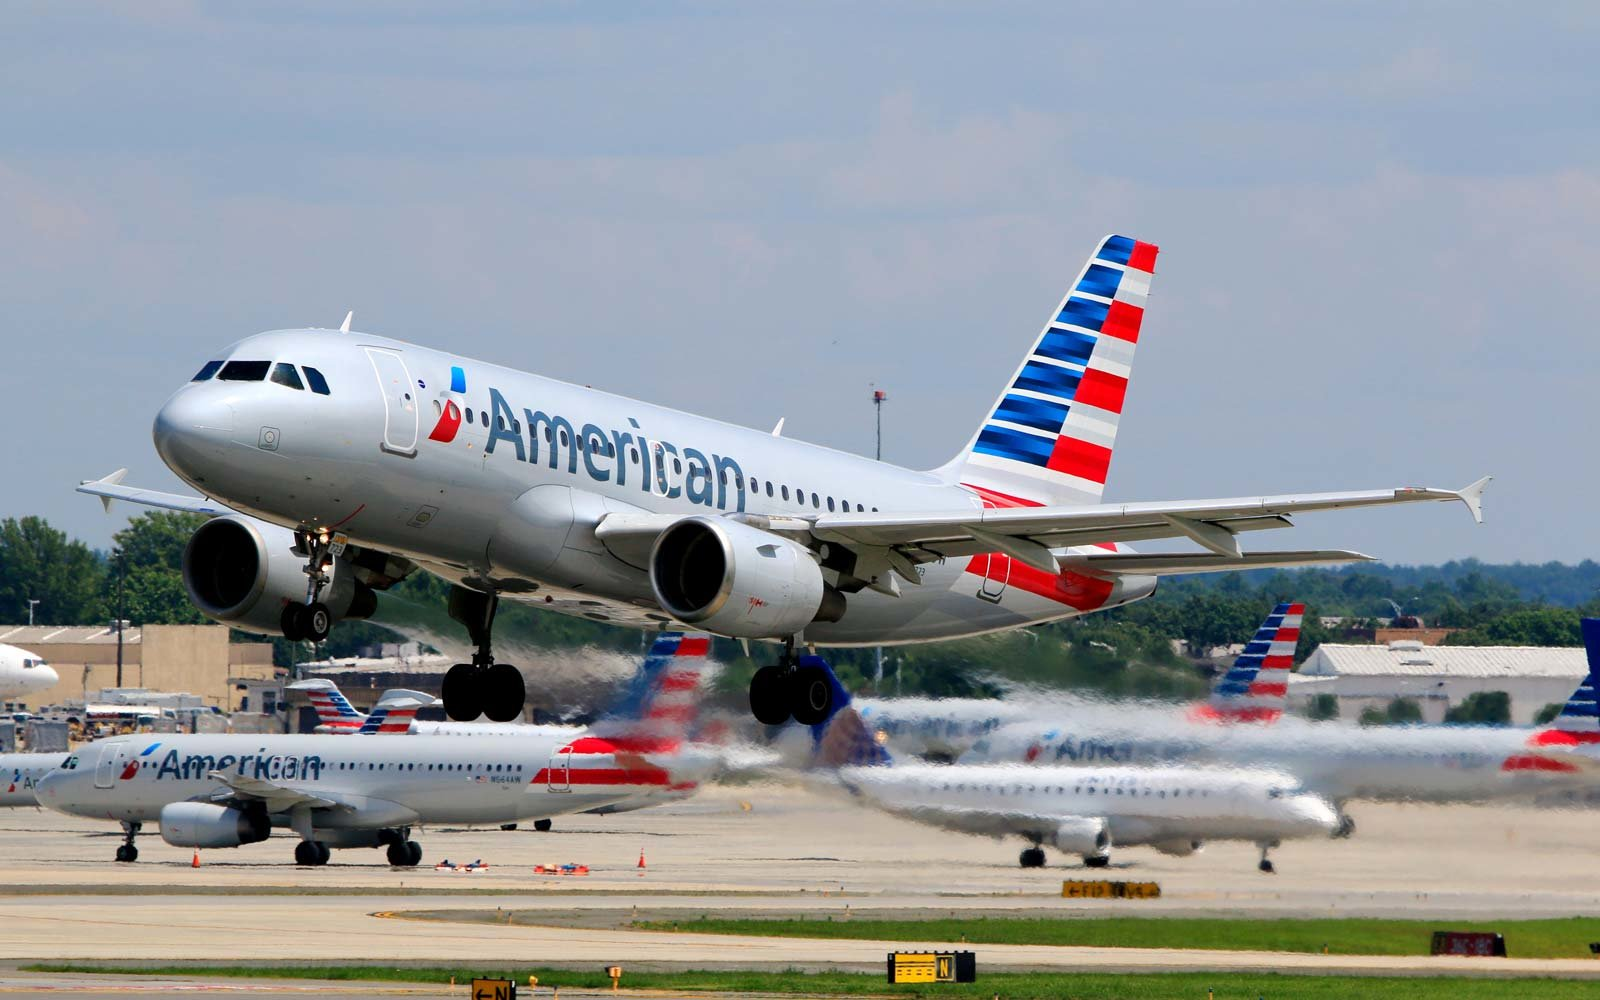 American Airlines customer service saves 2 lives in 1 day